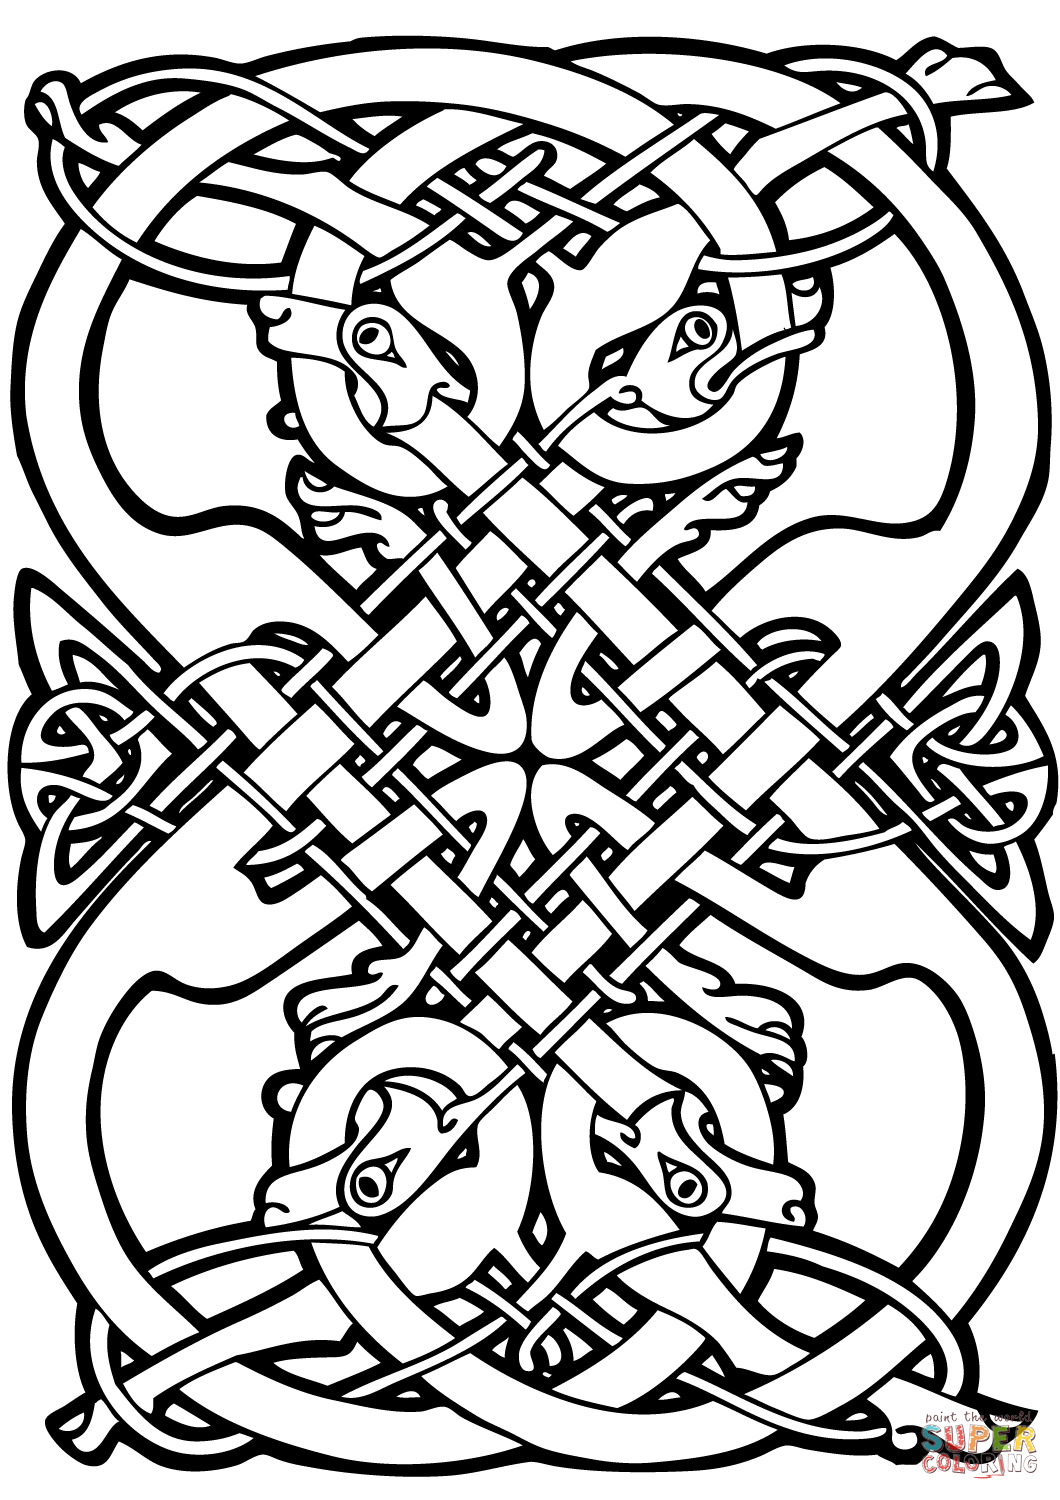 1060x1500 Celtic Design Coloring Page Free Printable Coloring Pages